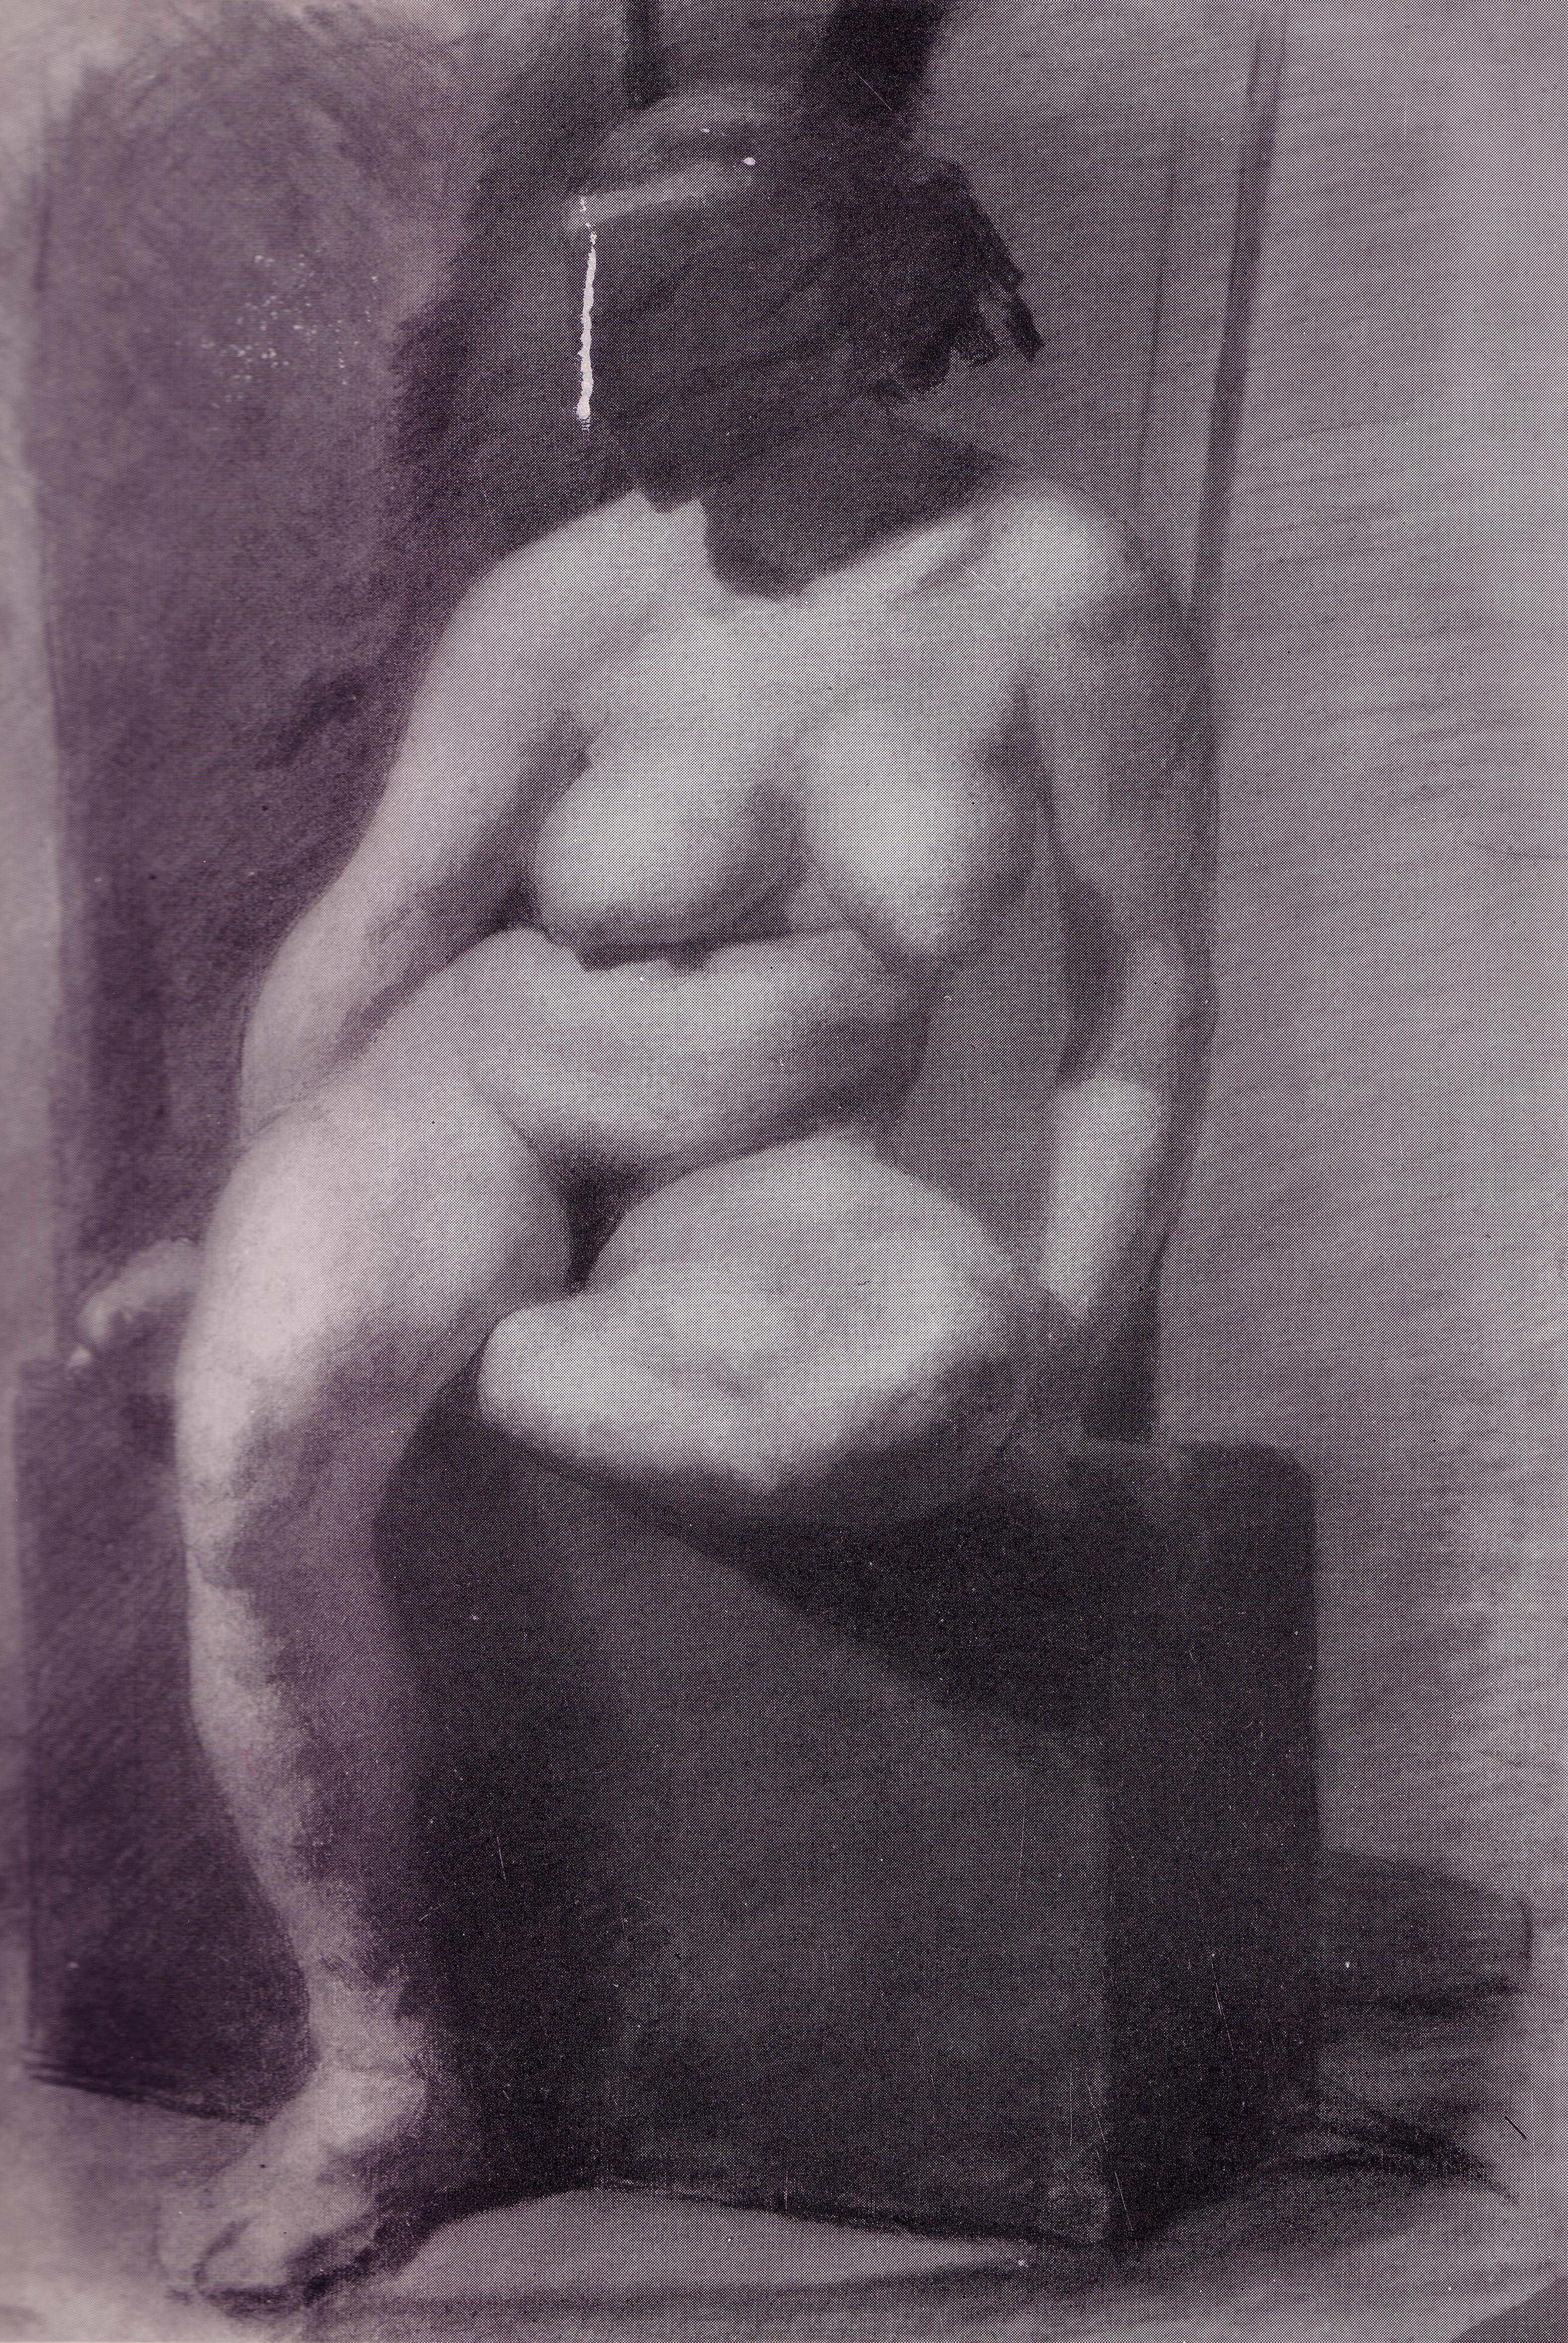 Eakins   Nude woman, seated, wearing a mask Country Singer Chely Wright Weds Lauren Blitzer    See The First Photo